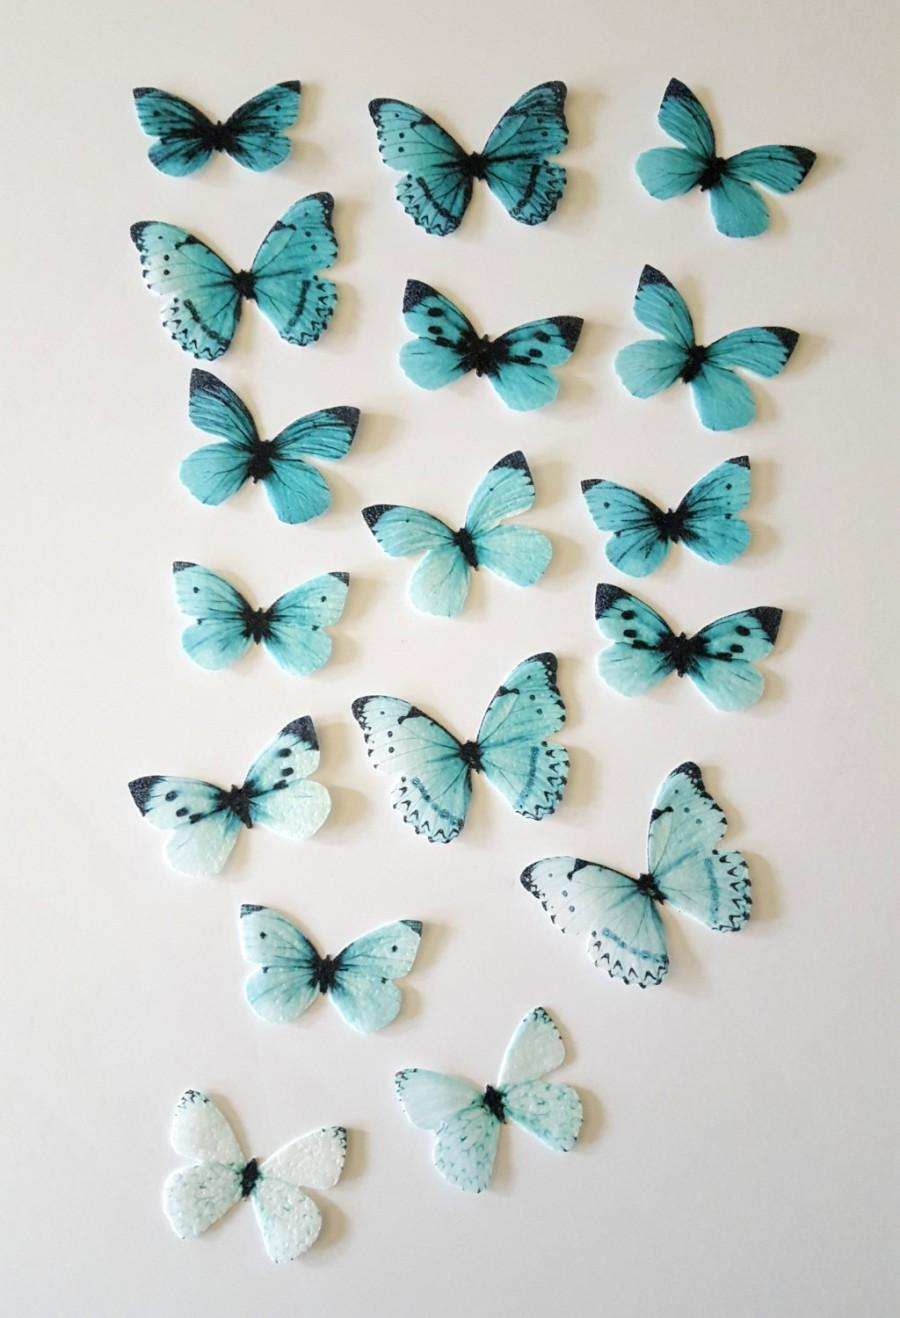 Hochzeit - Edible Butterflies, Ombre Double-Sided Wafer Paper Toppers for Cakes, Cupcakes or Cookies